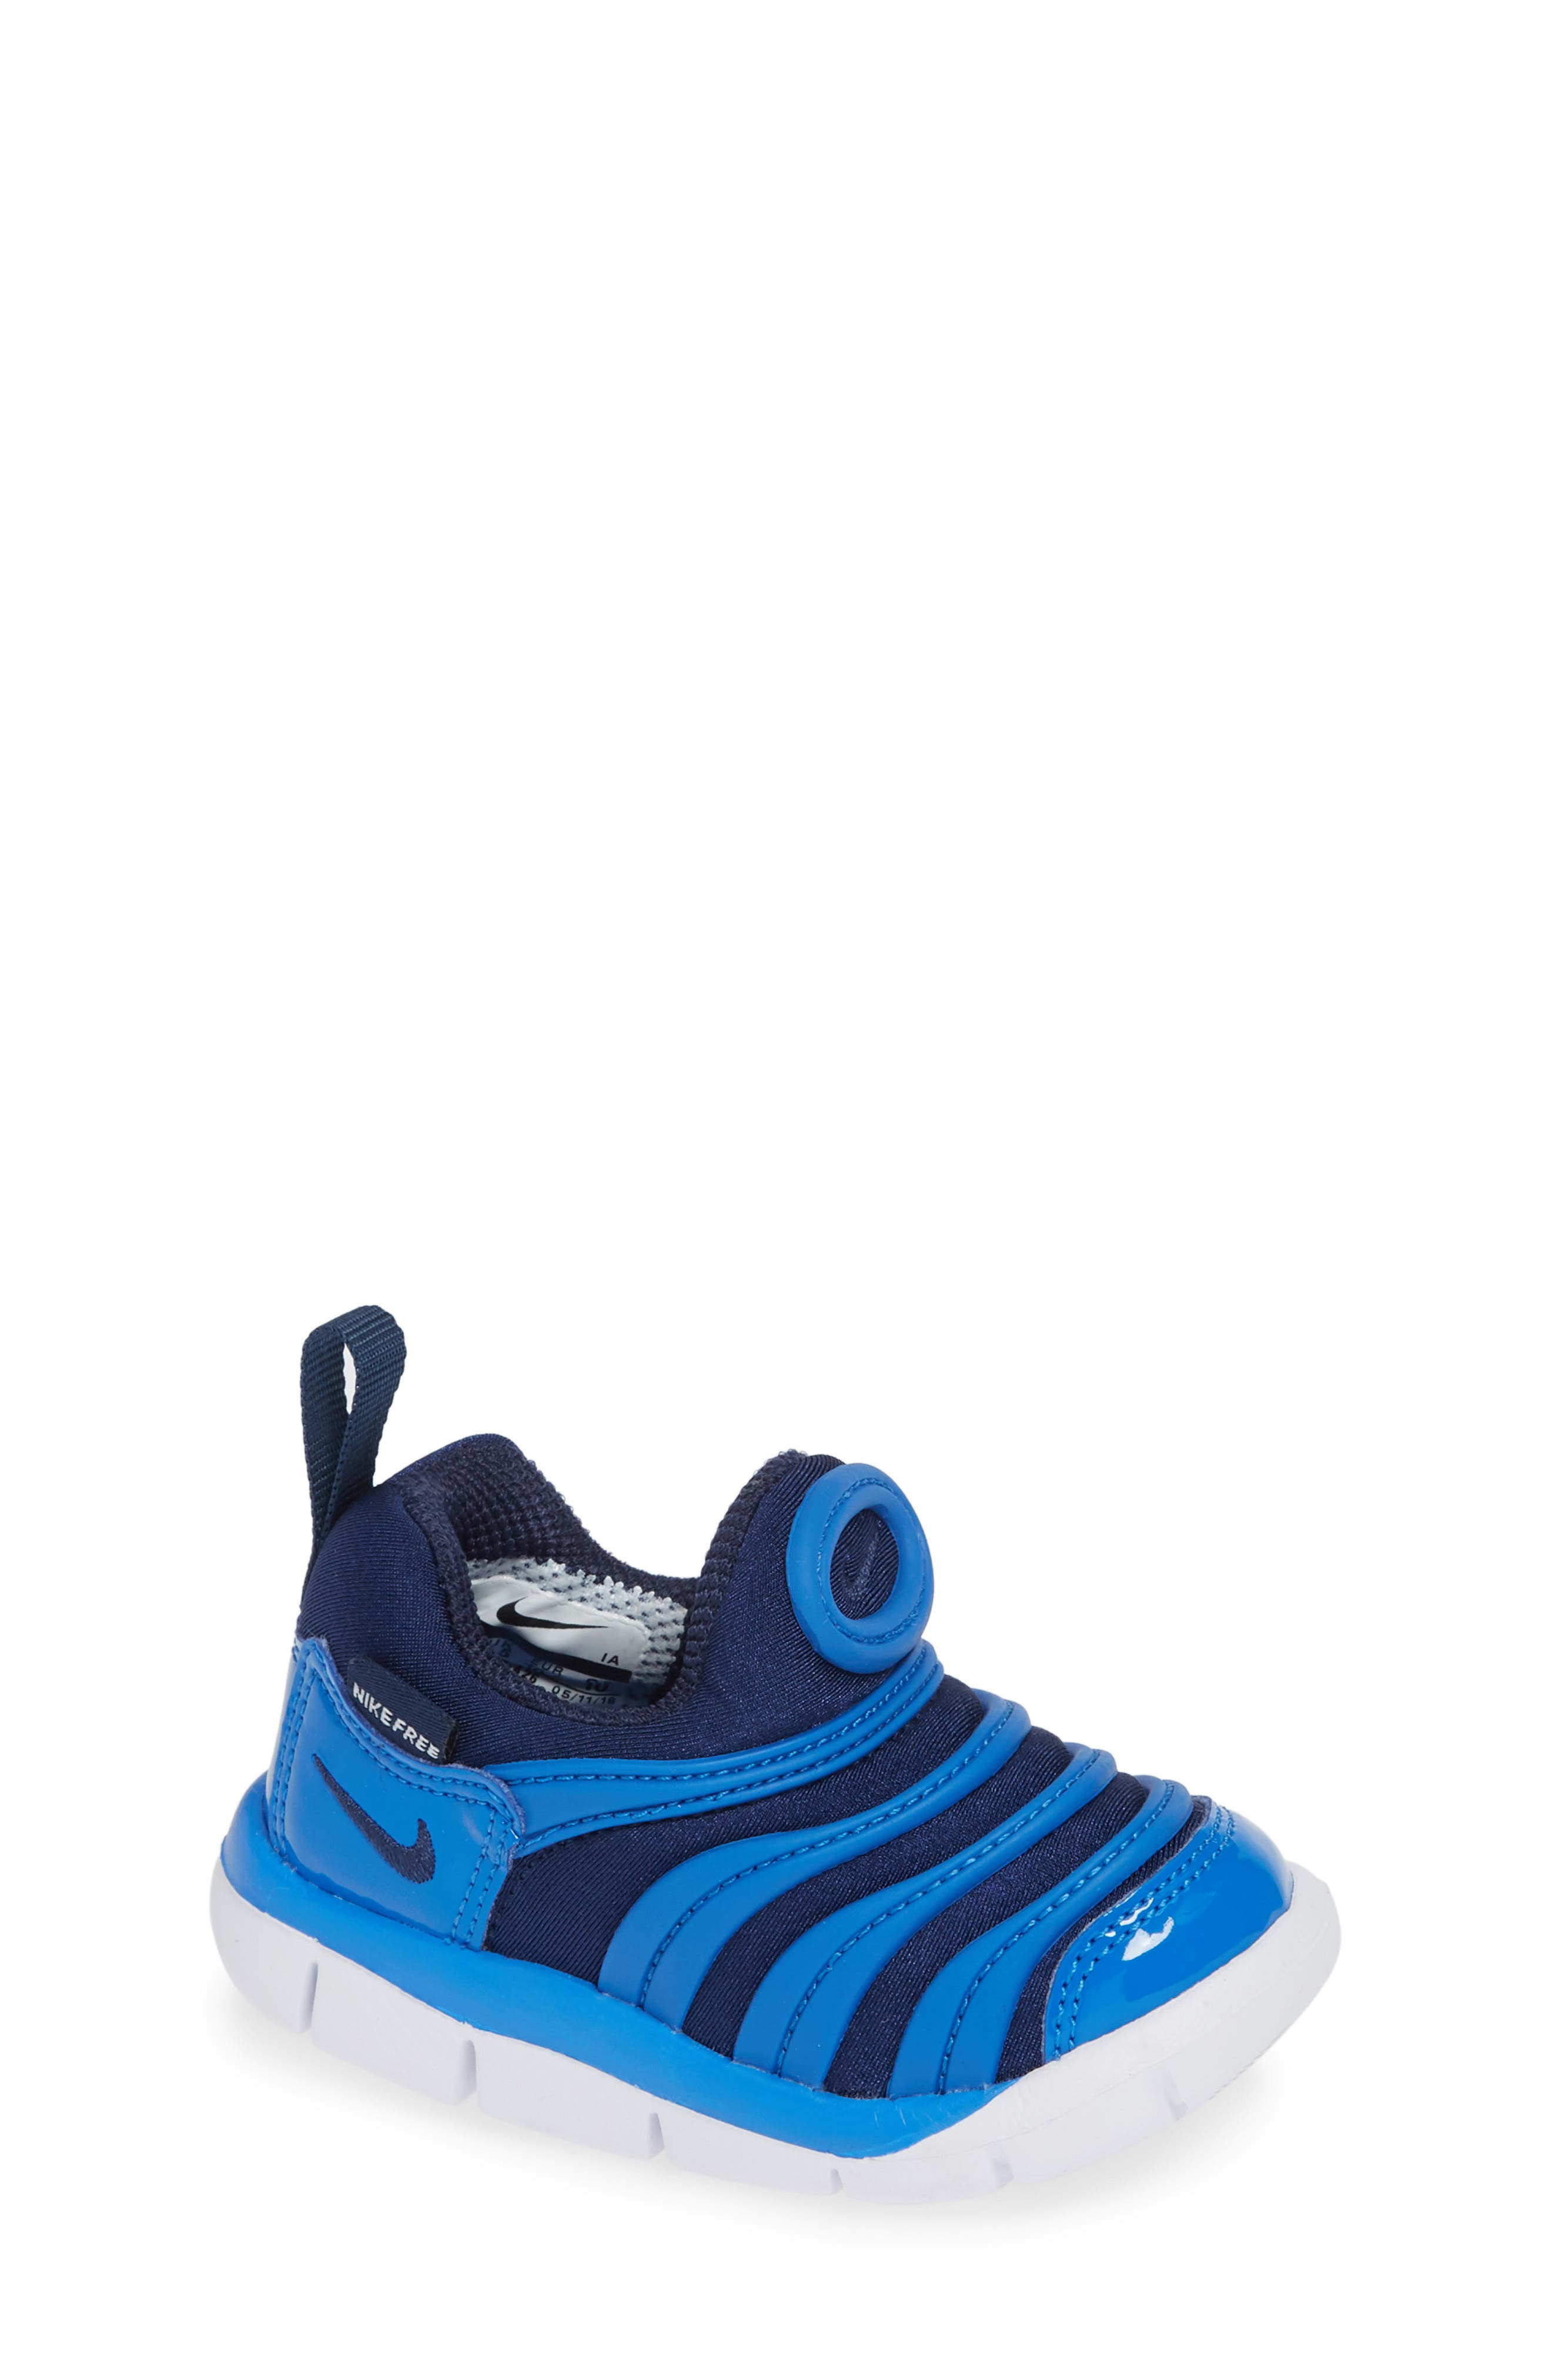 Dynamo Free Sneaker,                         Main,                         color, SIGNAL BLUE/ MIDNIGHT/ WHITE